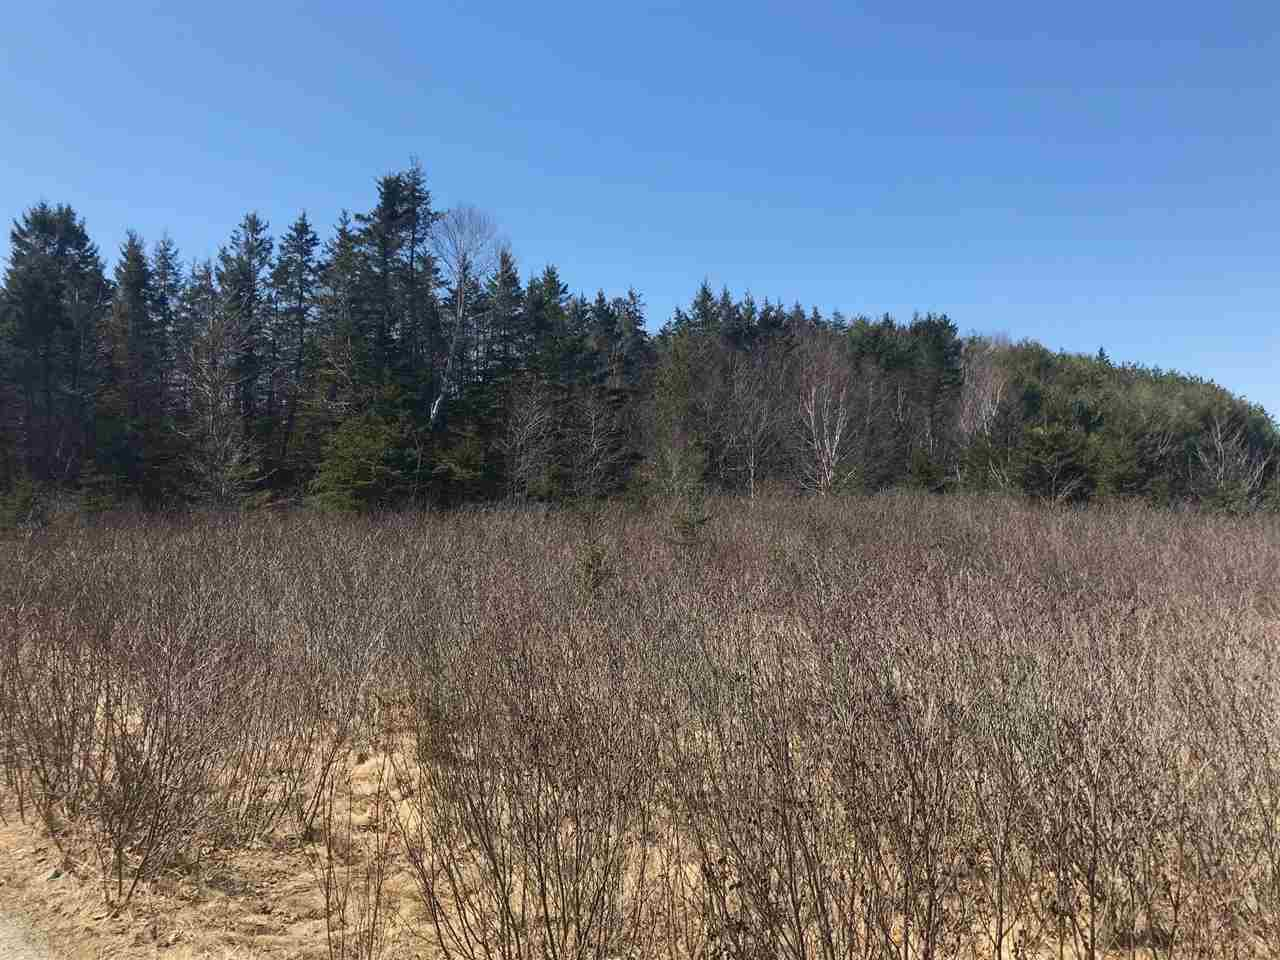 Photo 3: Photos: 11574 Highway 7 in Lake Charlotte: 35-Halifax County East Vacant Land for sale (Halifax-Dartmouth)  : MLS®# 201927372